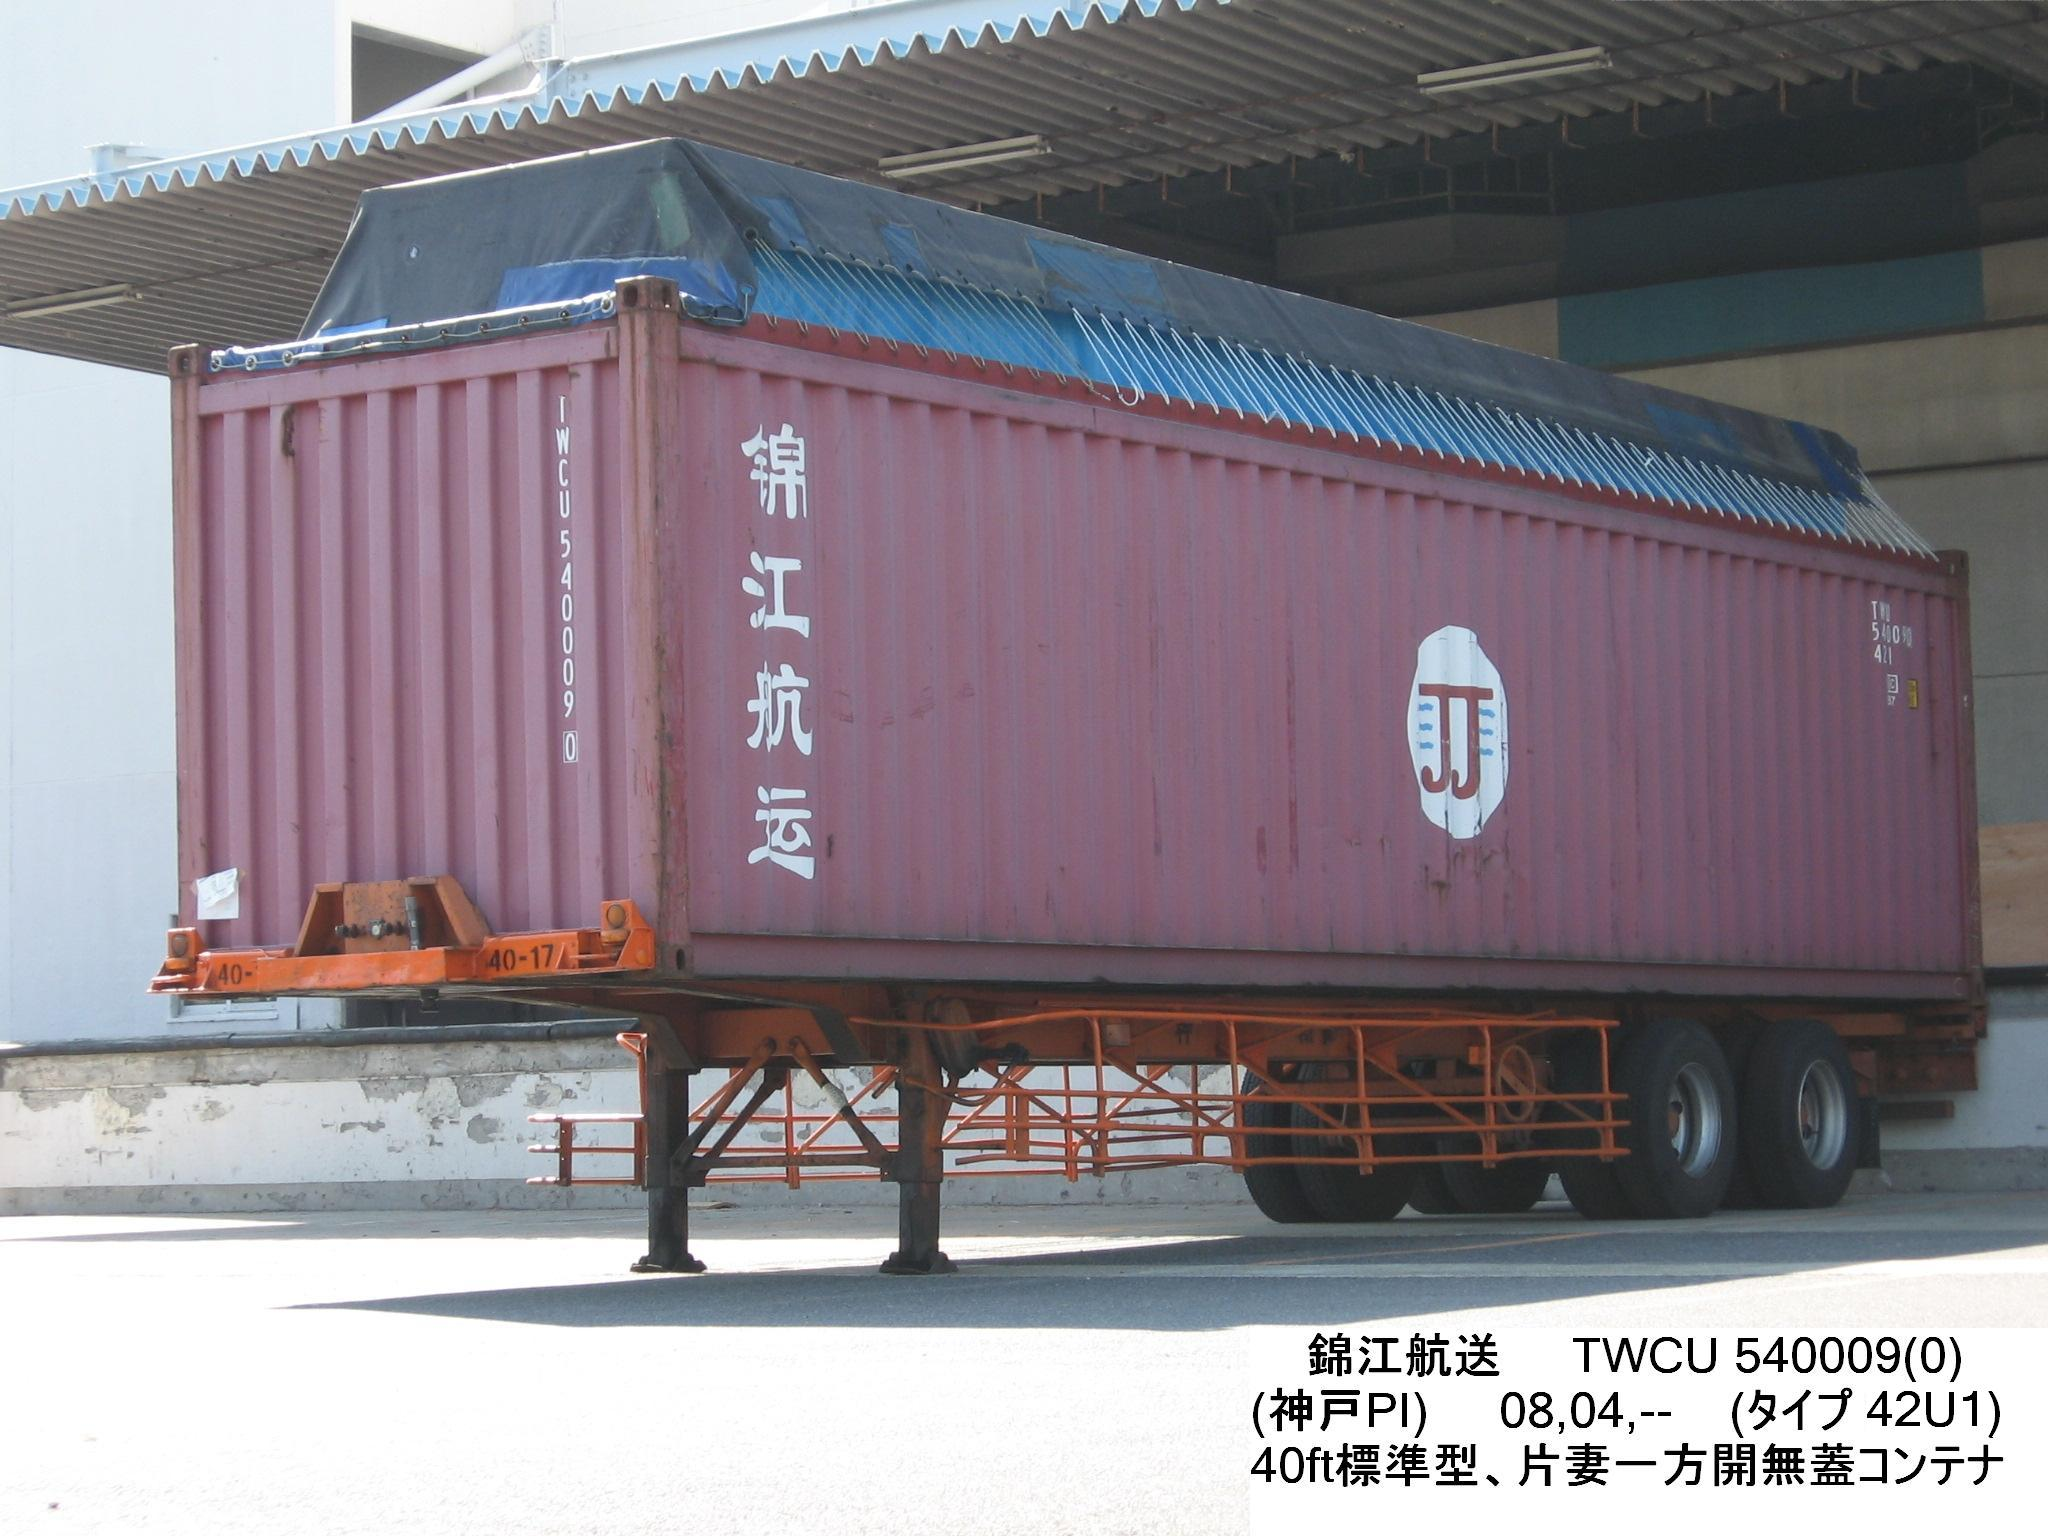 File:Container 【 42U1 】 TWCU 540009(0)---No,2 【 Pictures taken in